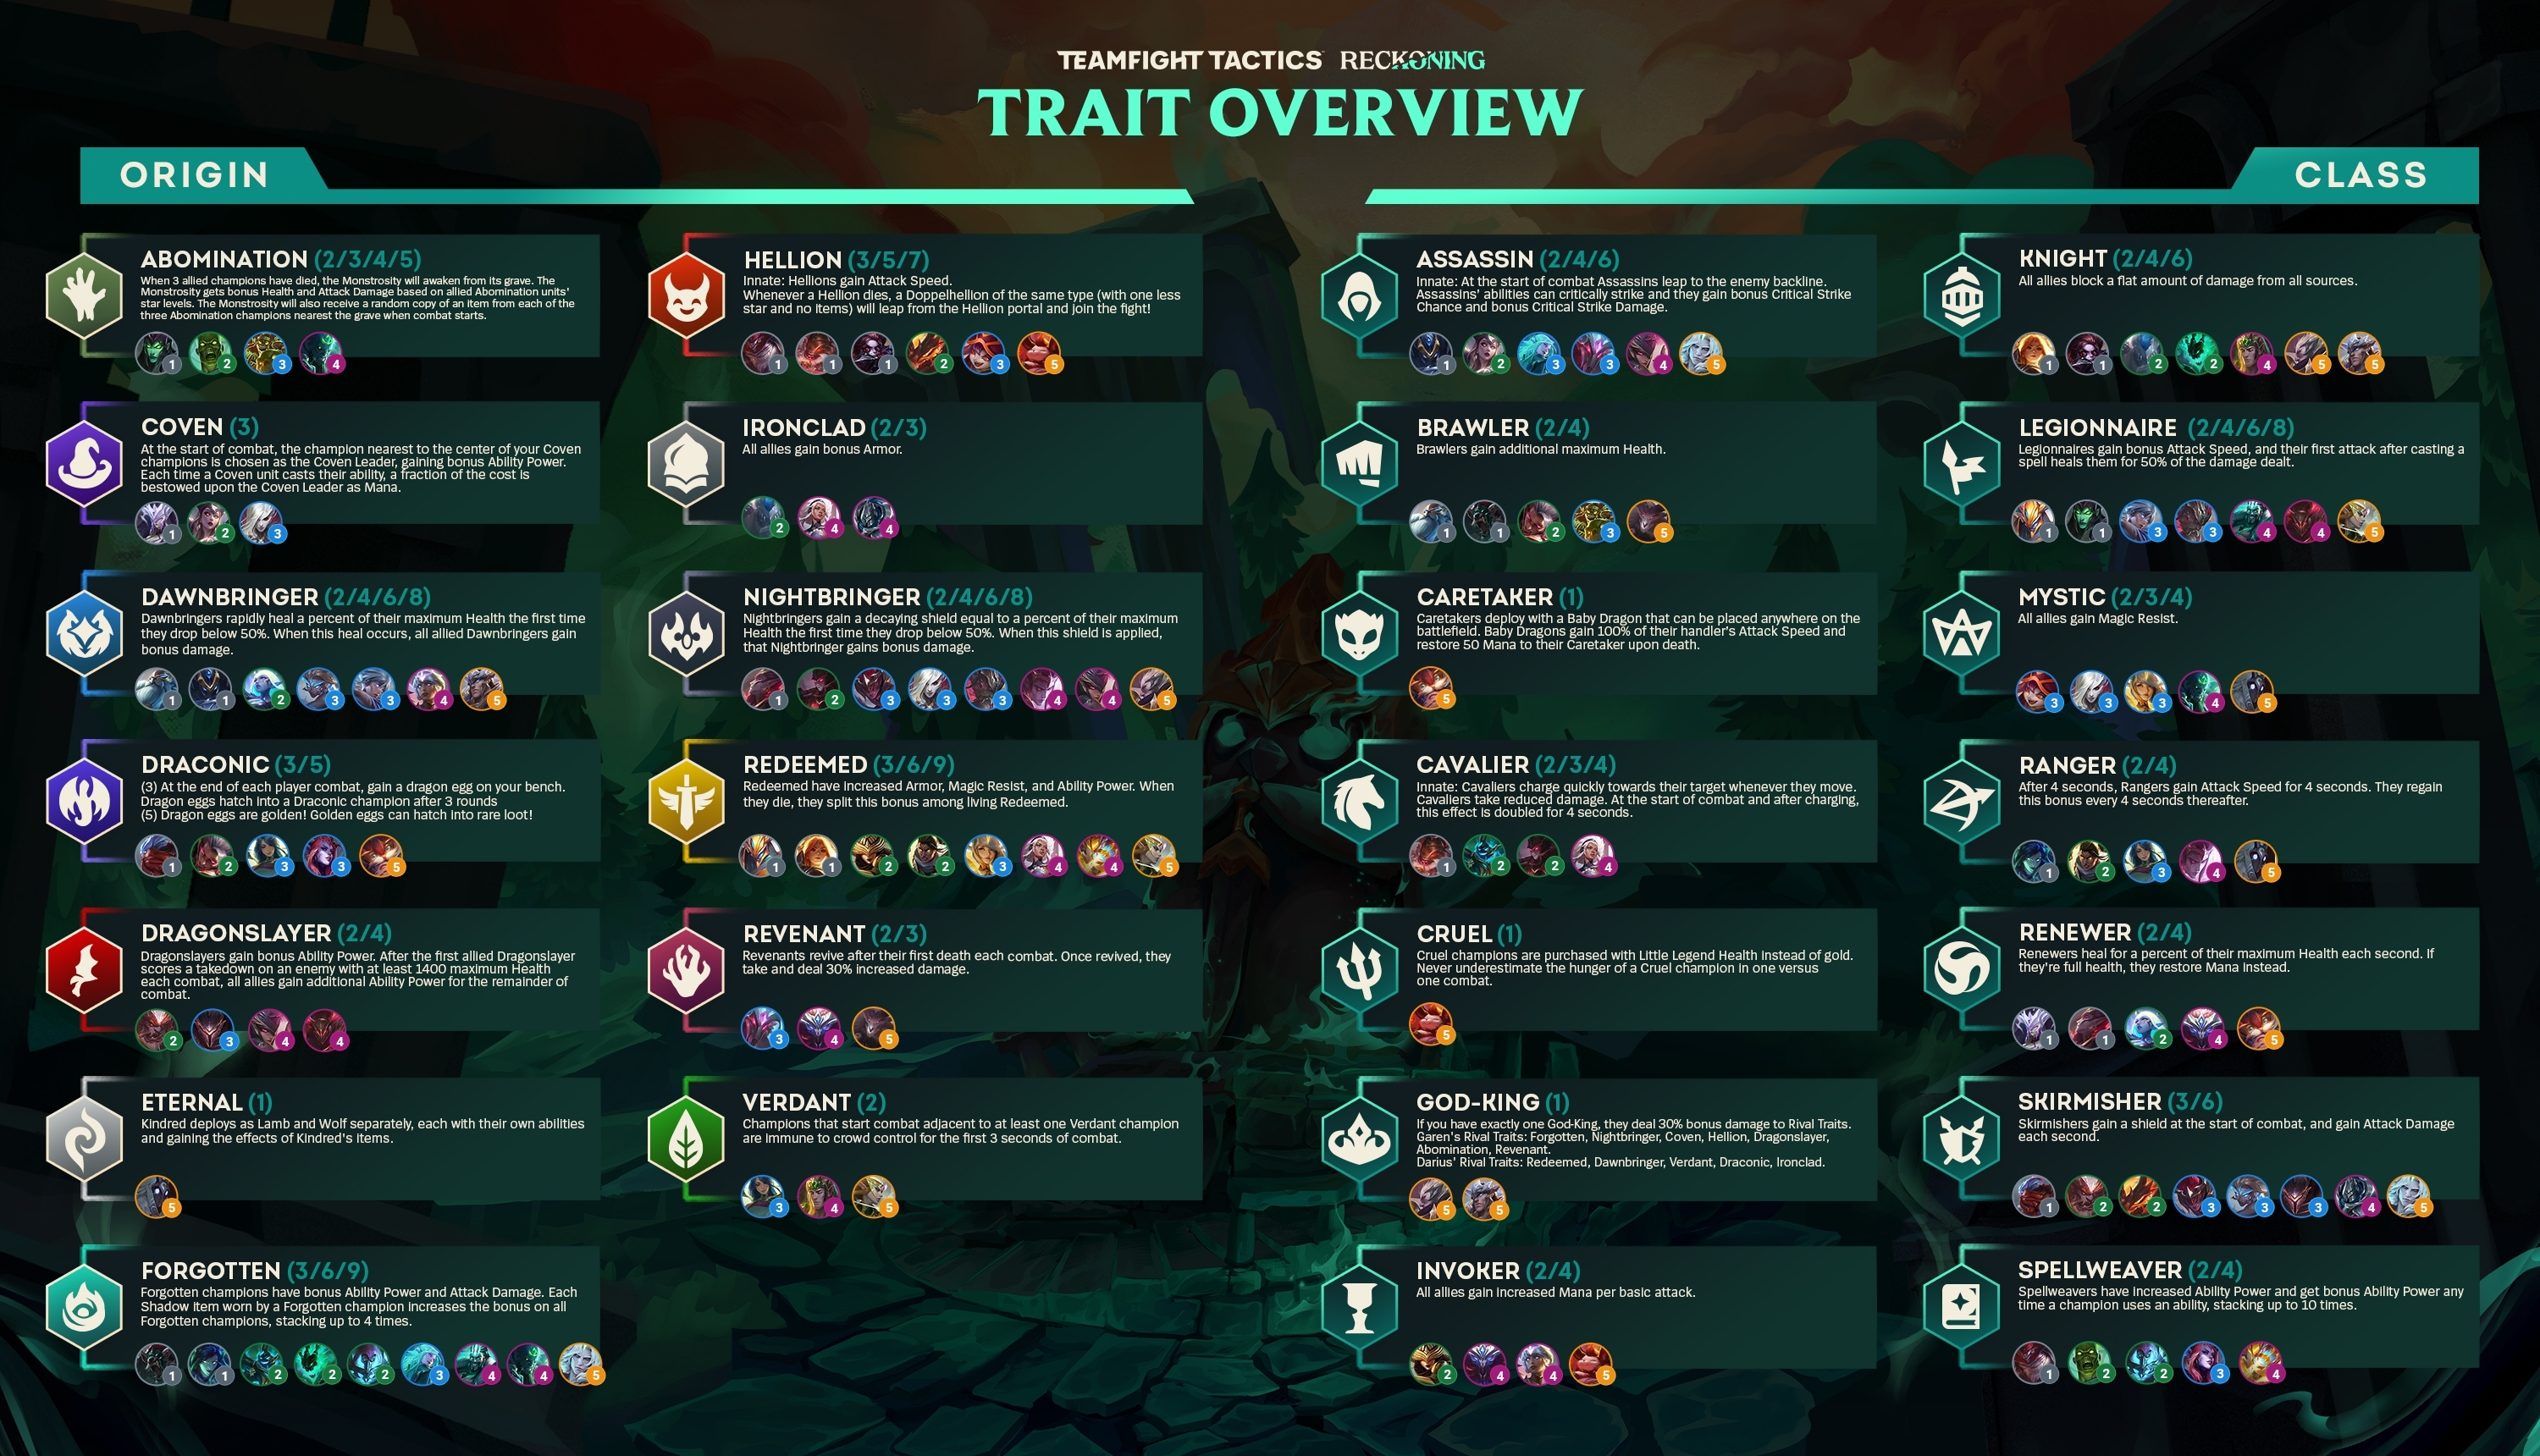 TFT_Reckoning_CheatSheet_Final_v1.jpg